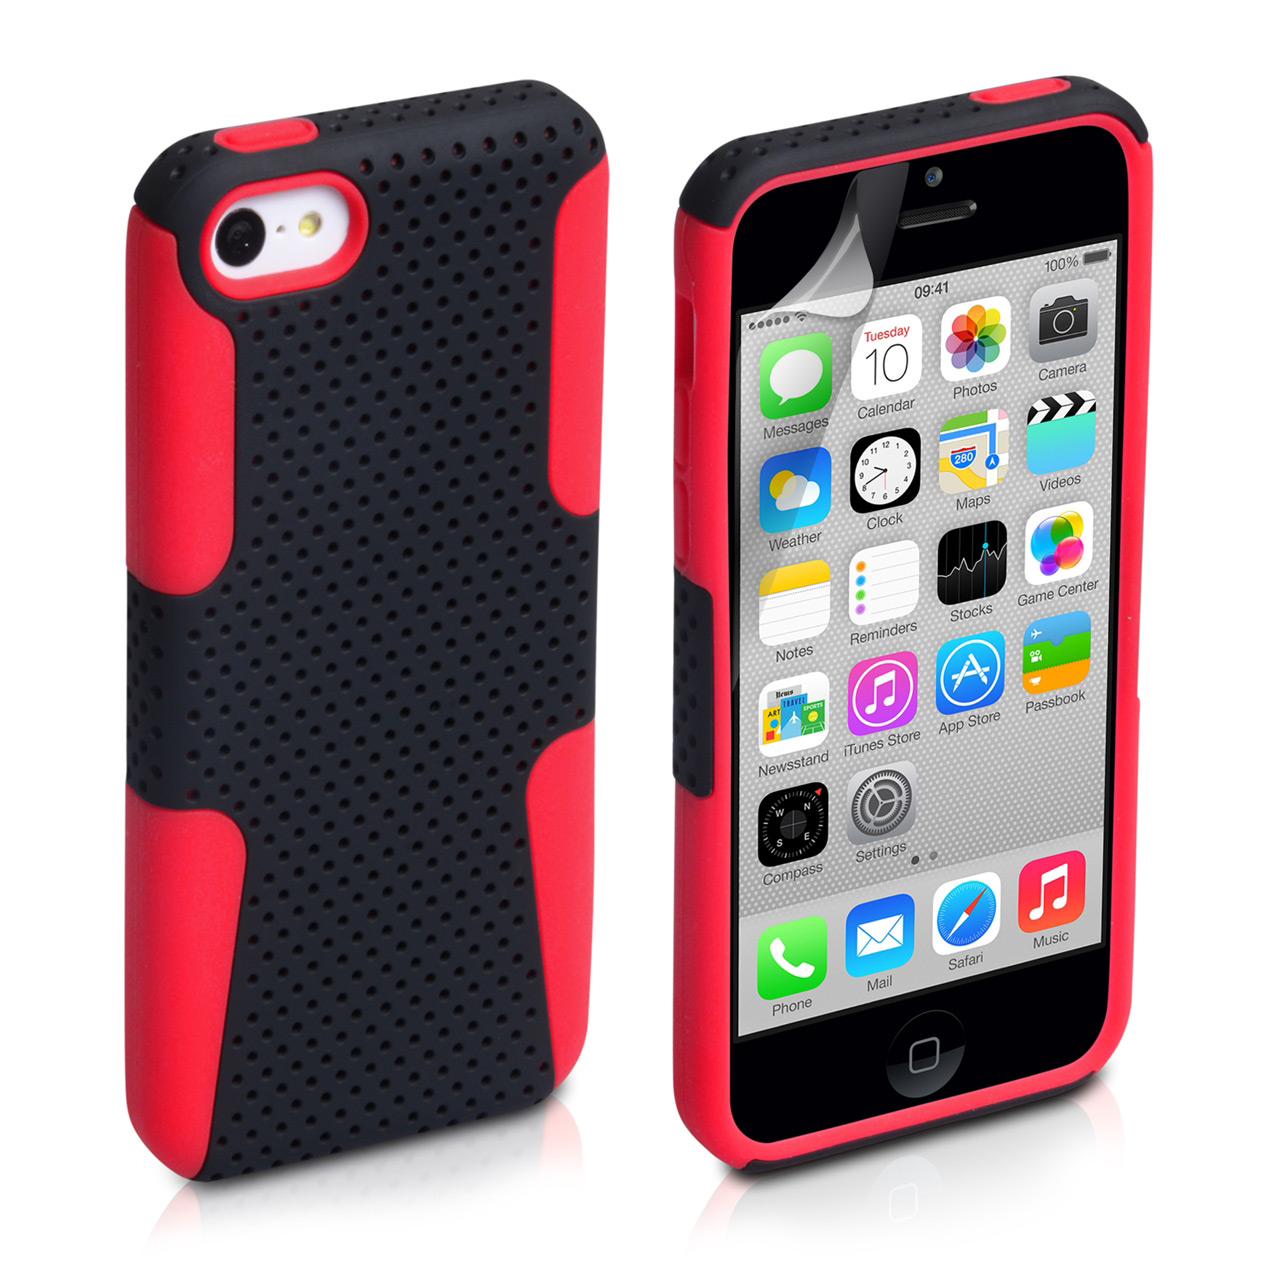 YouSave Accessories iPhone 5C Mesh Combo Case - Red